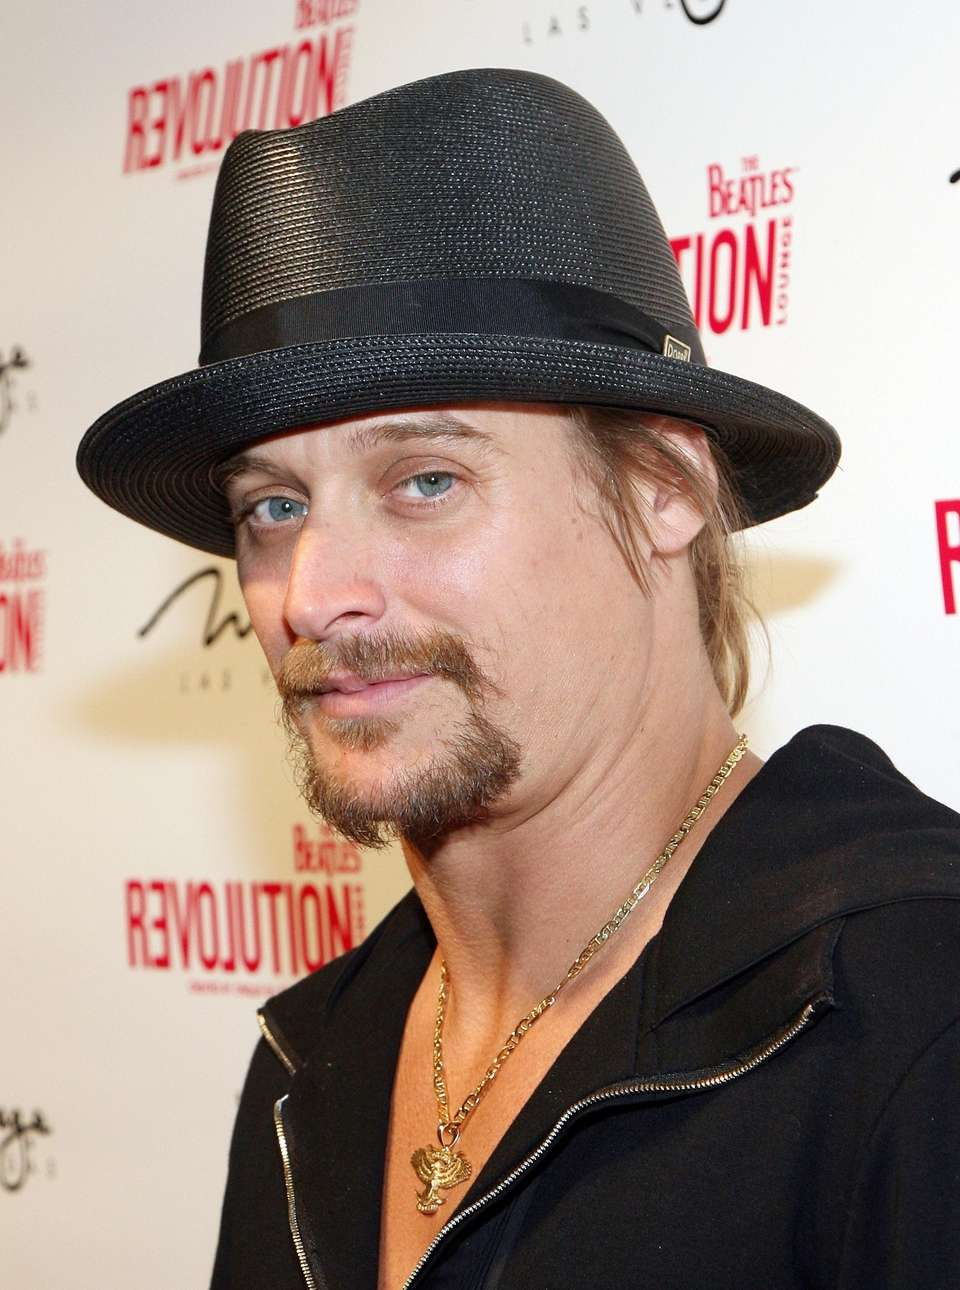 Stage name: Kid Rock Birth name: Robert James